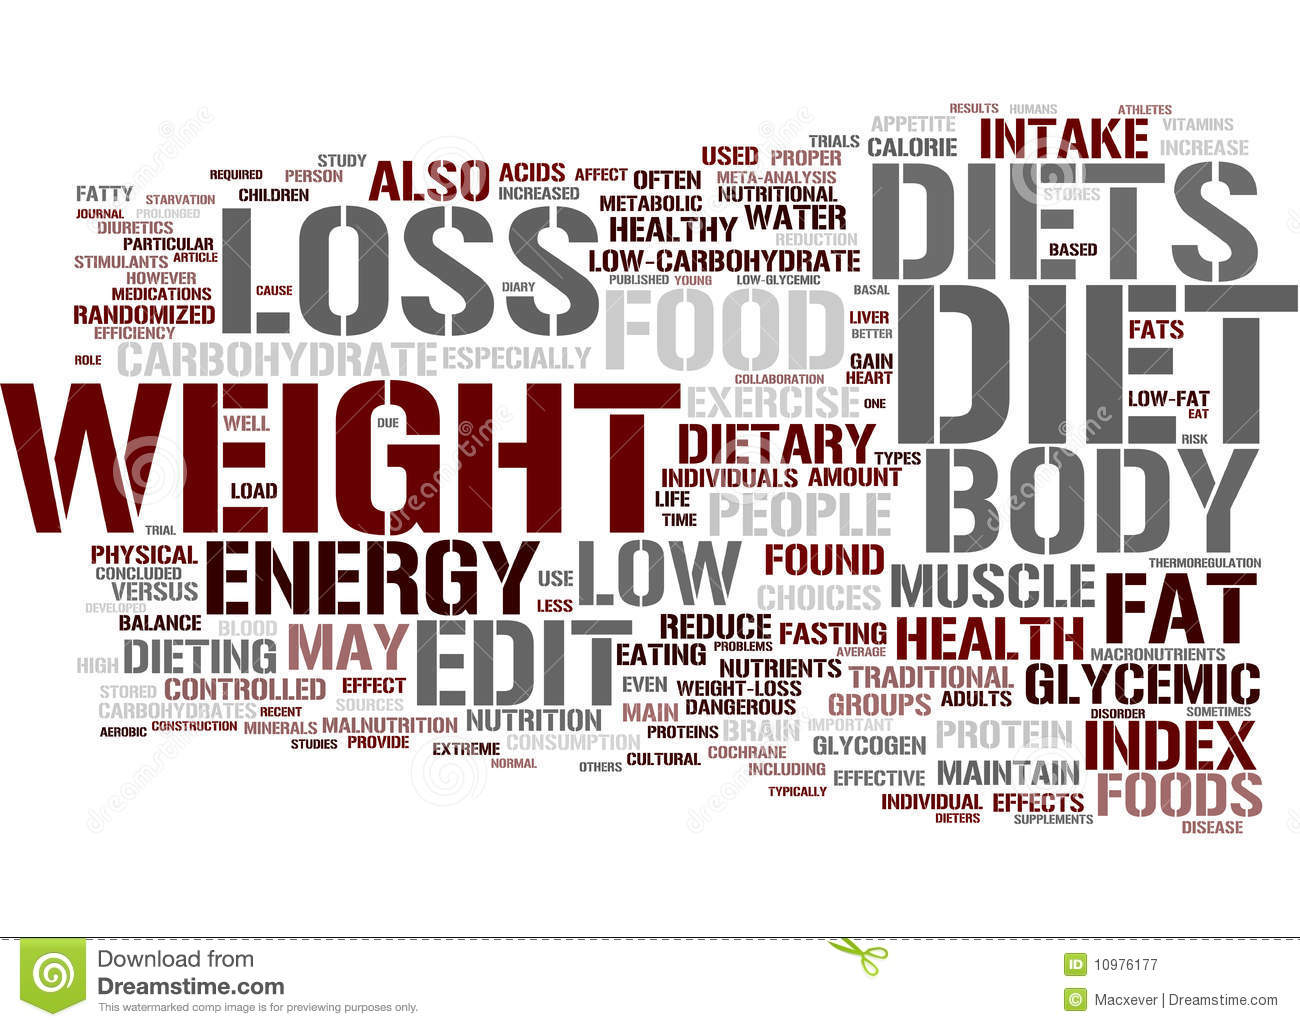 http://www.dreamstime.com/royalty-free-stock-photography-diet-word-cloud-image10976177